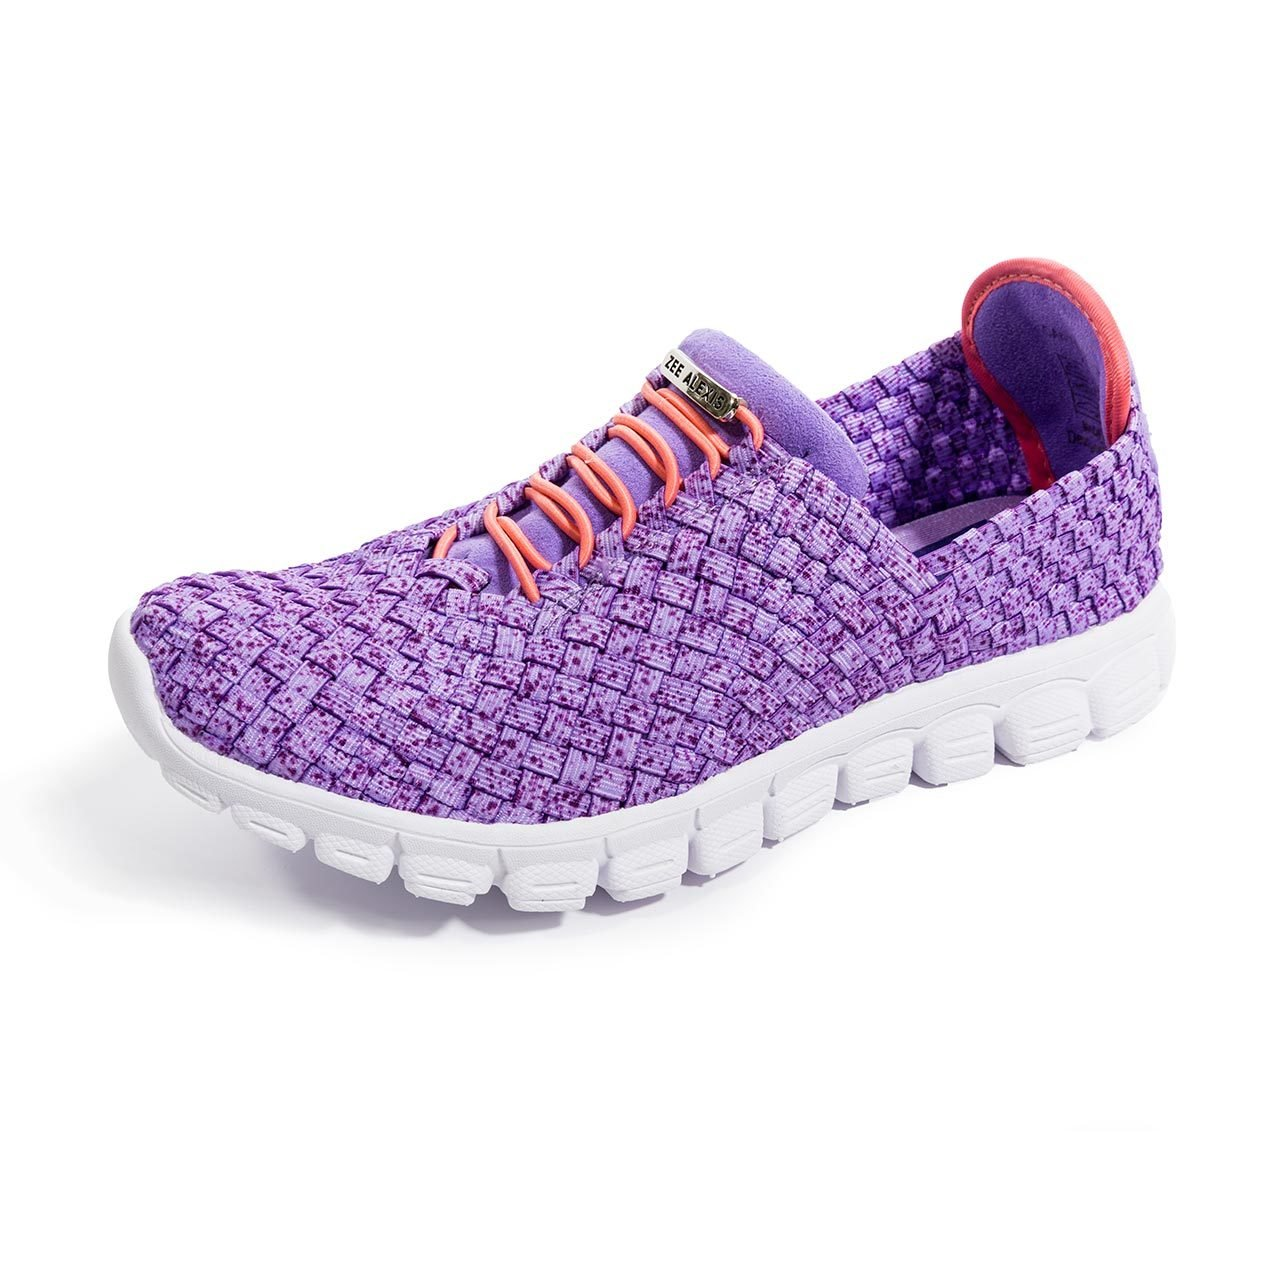 Zee Alexis Women's Danielle Fashion Sneakers B079V5995Q 40 M EU|Purple Speckle